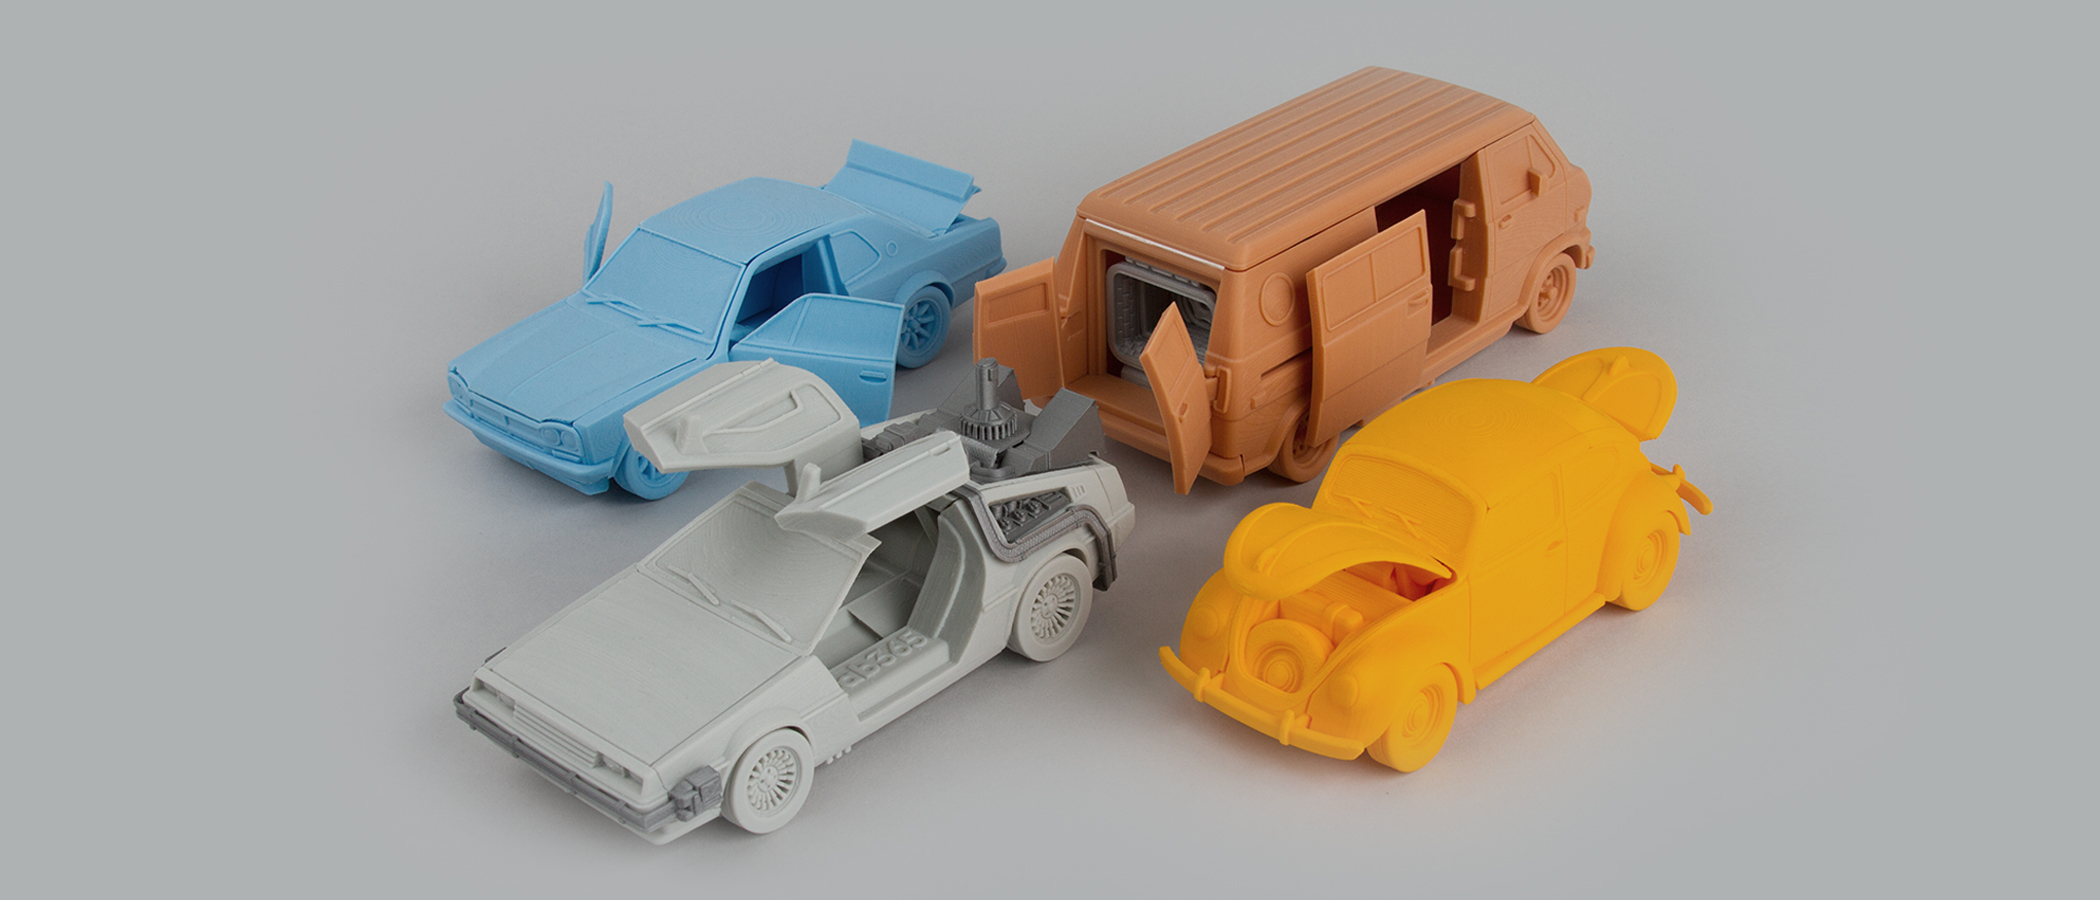 Cars from Movies